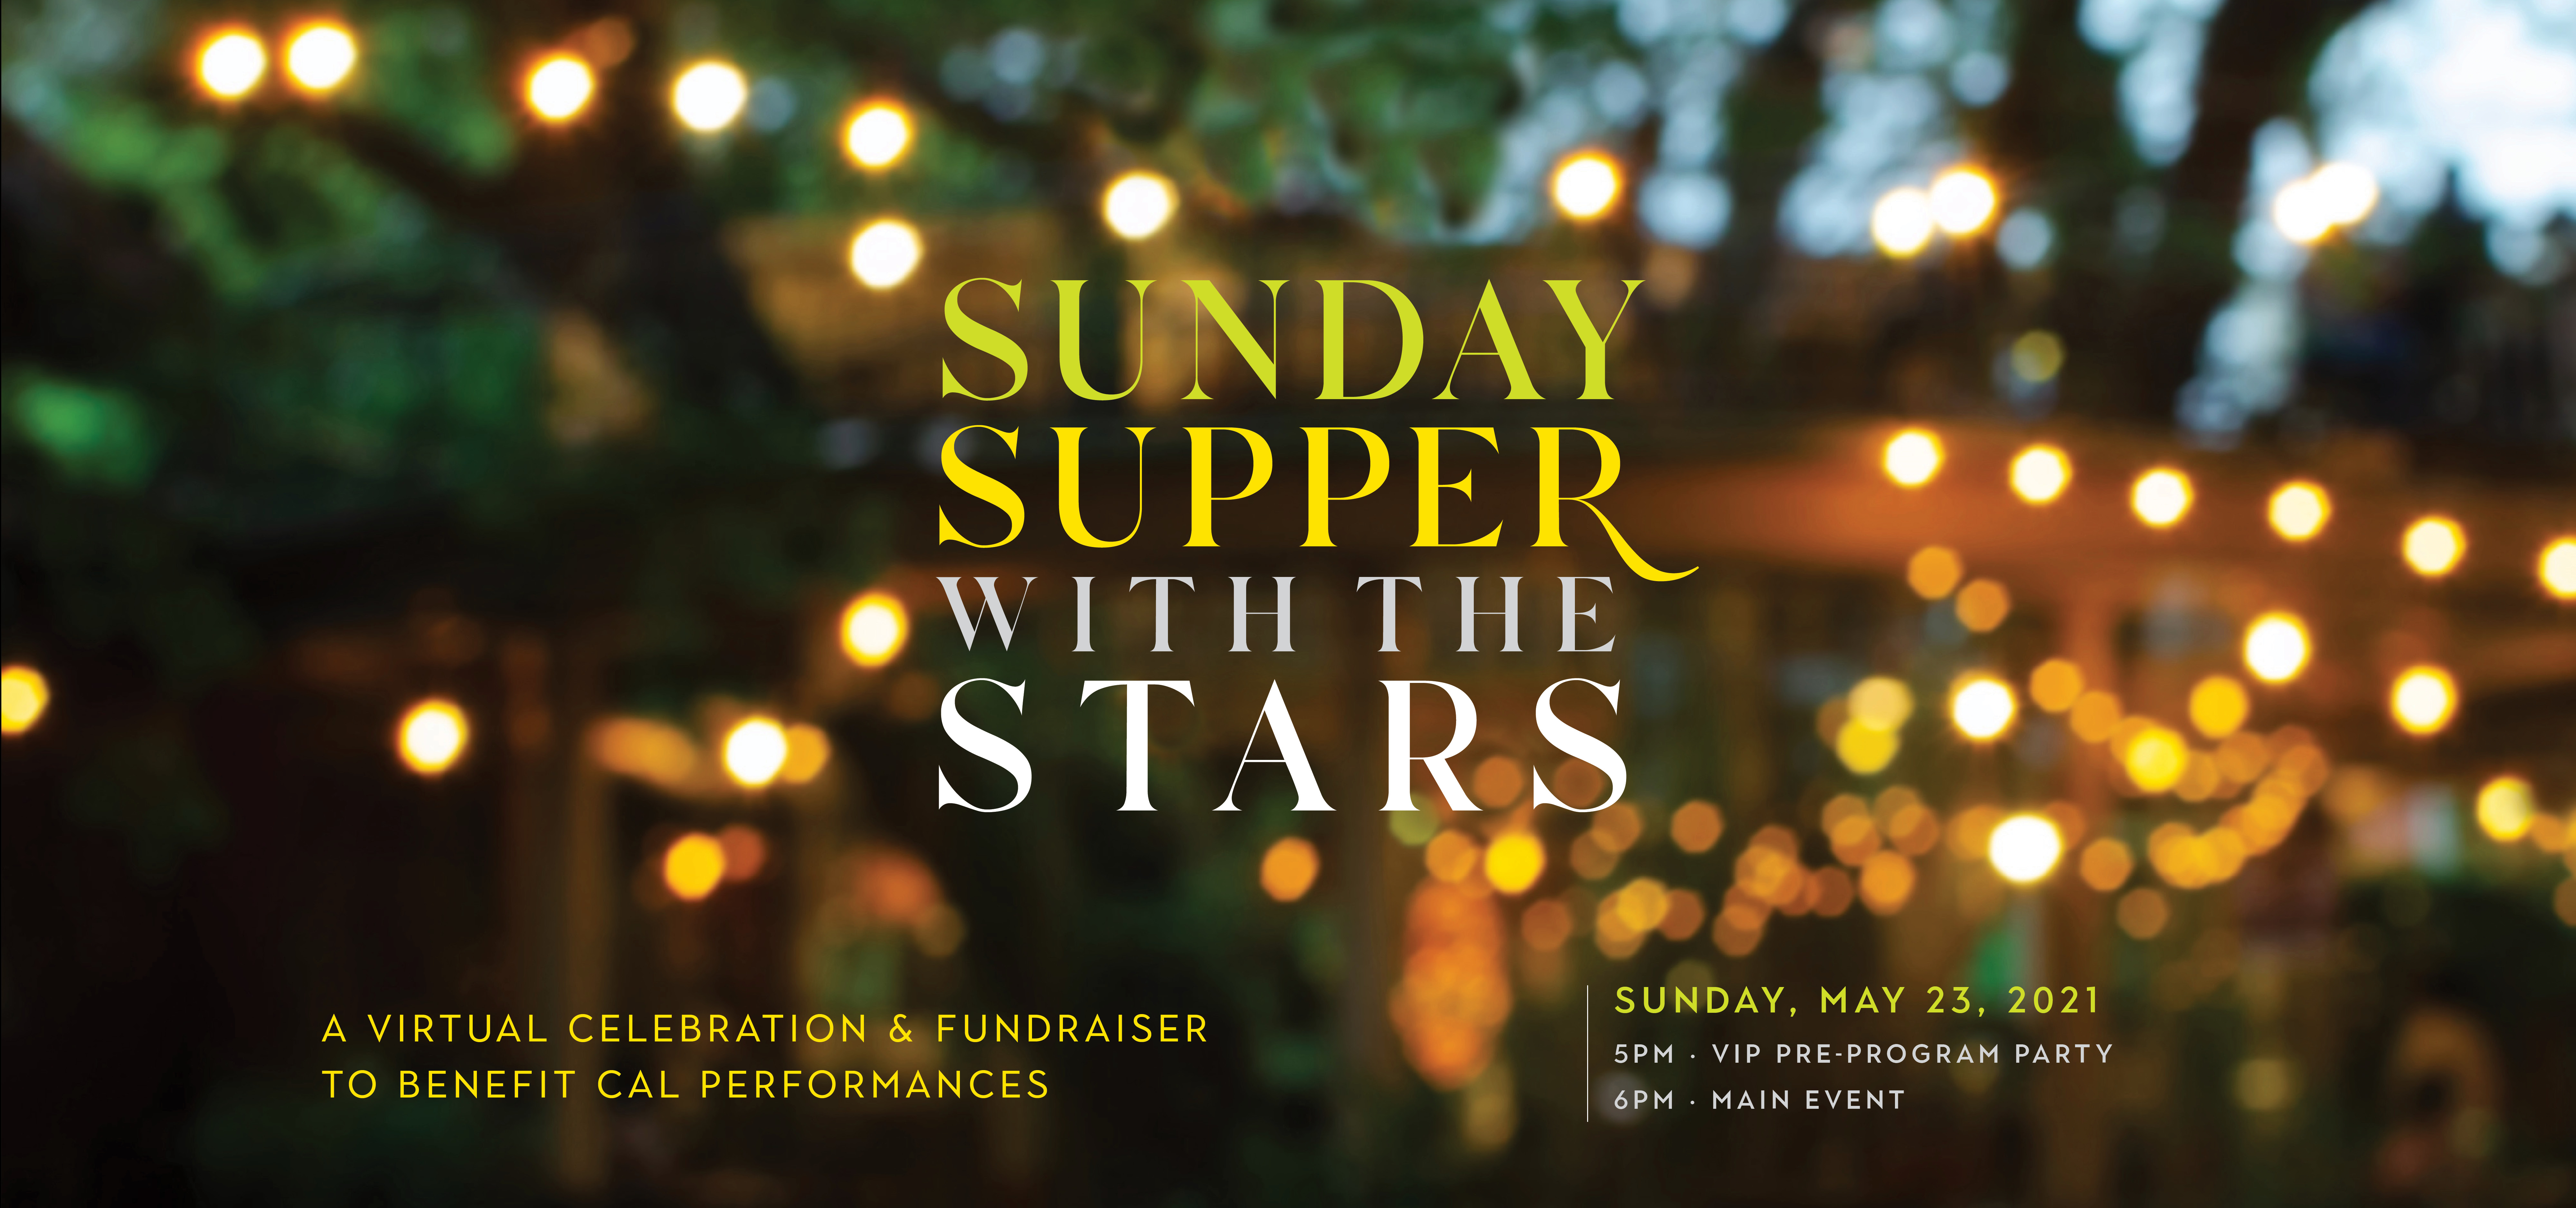 Sunday Supper with the Stars